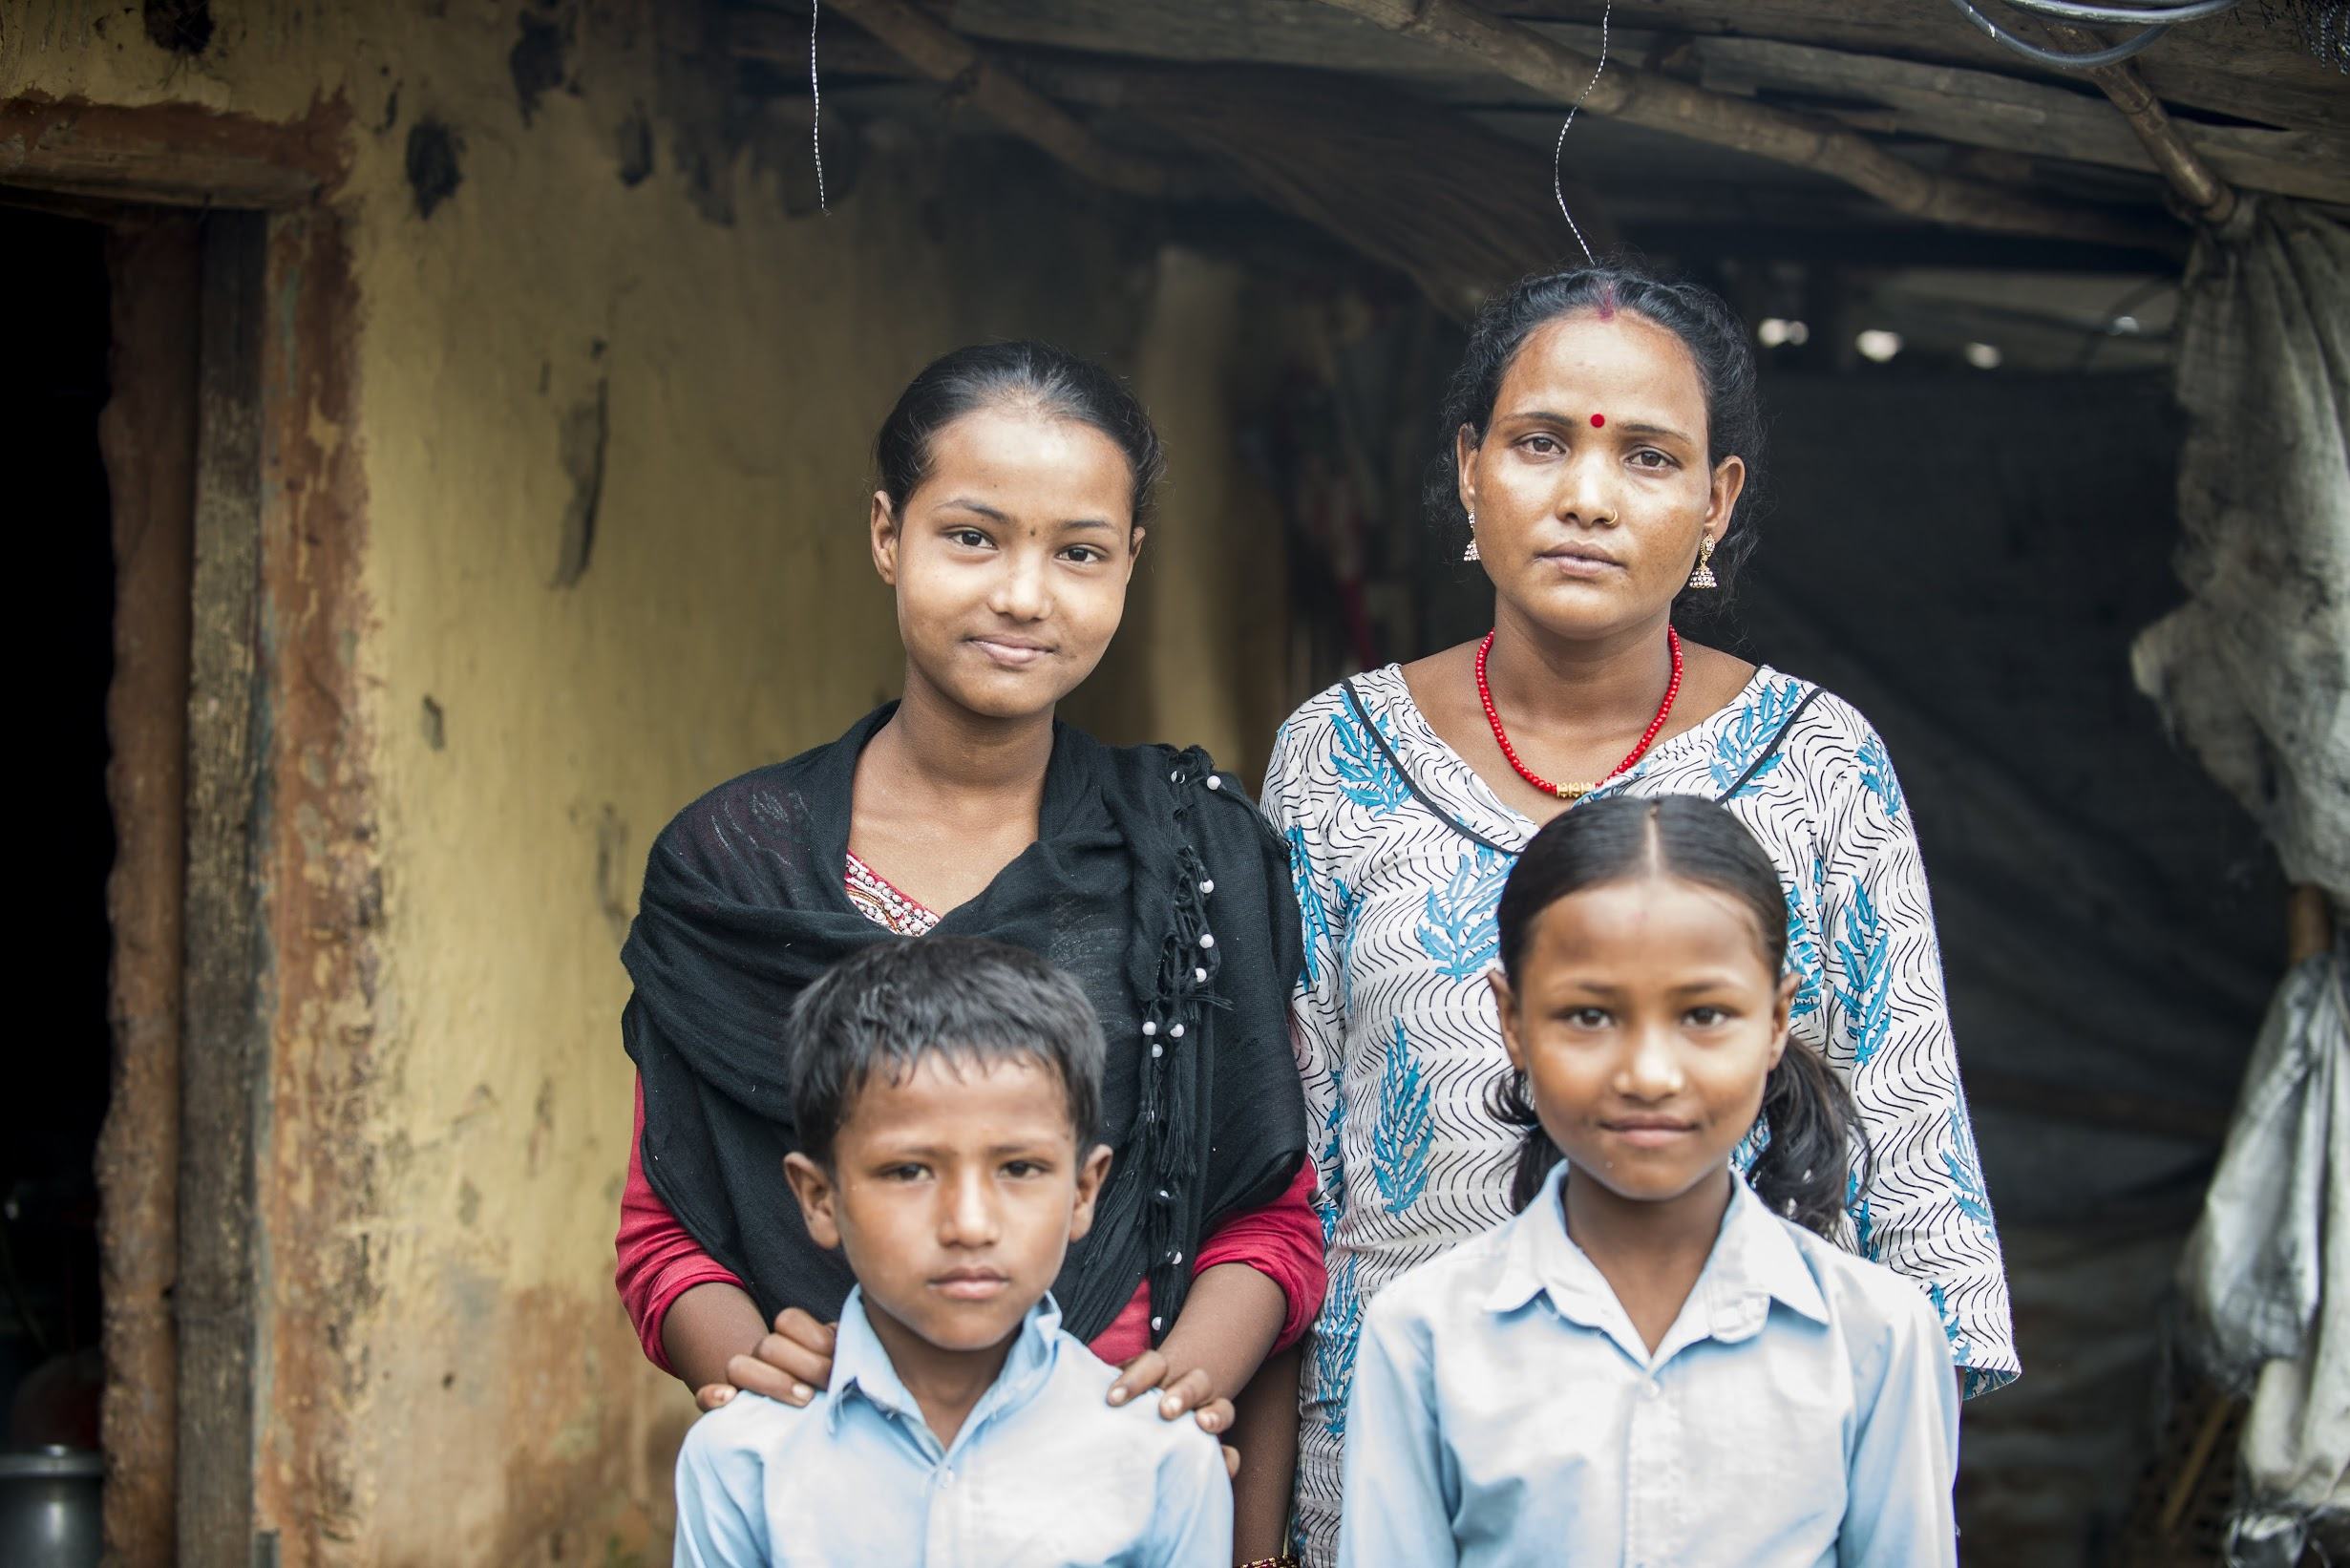 Dhana poses with her three children of her four children before they head to school and she heads to the Women's Center